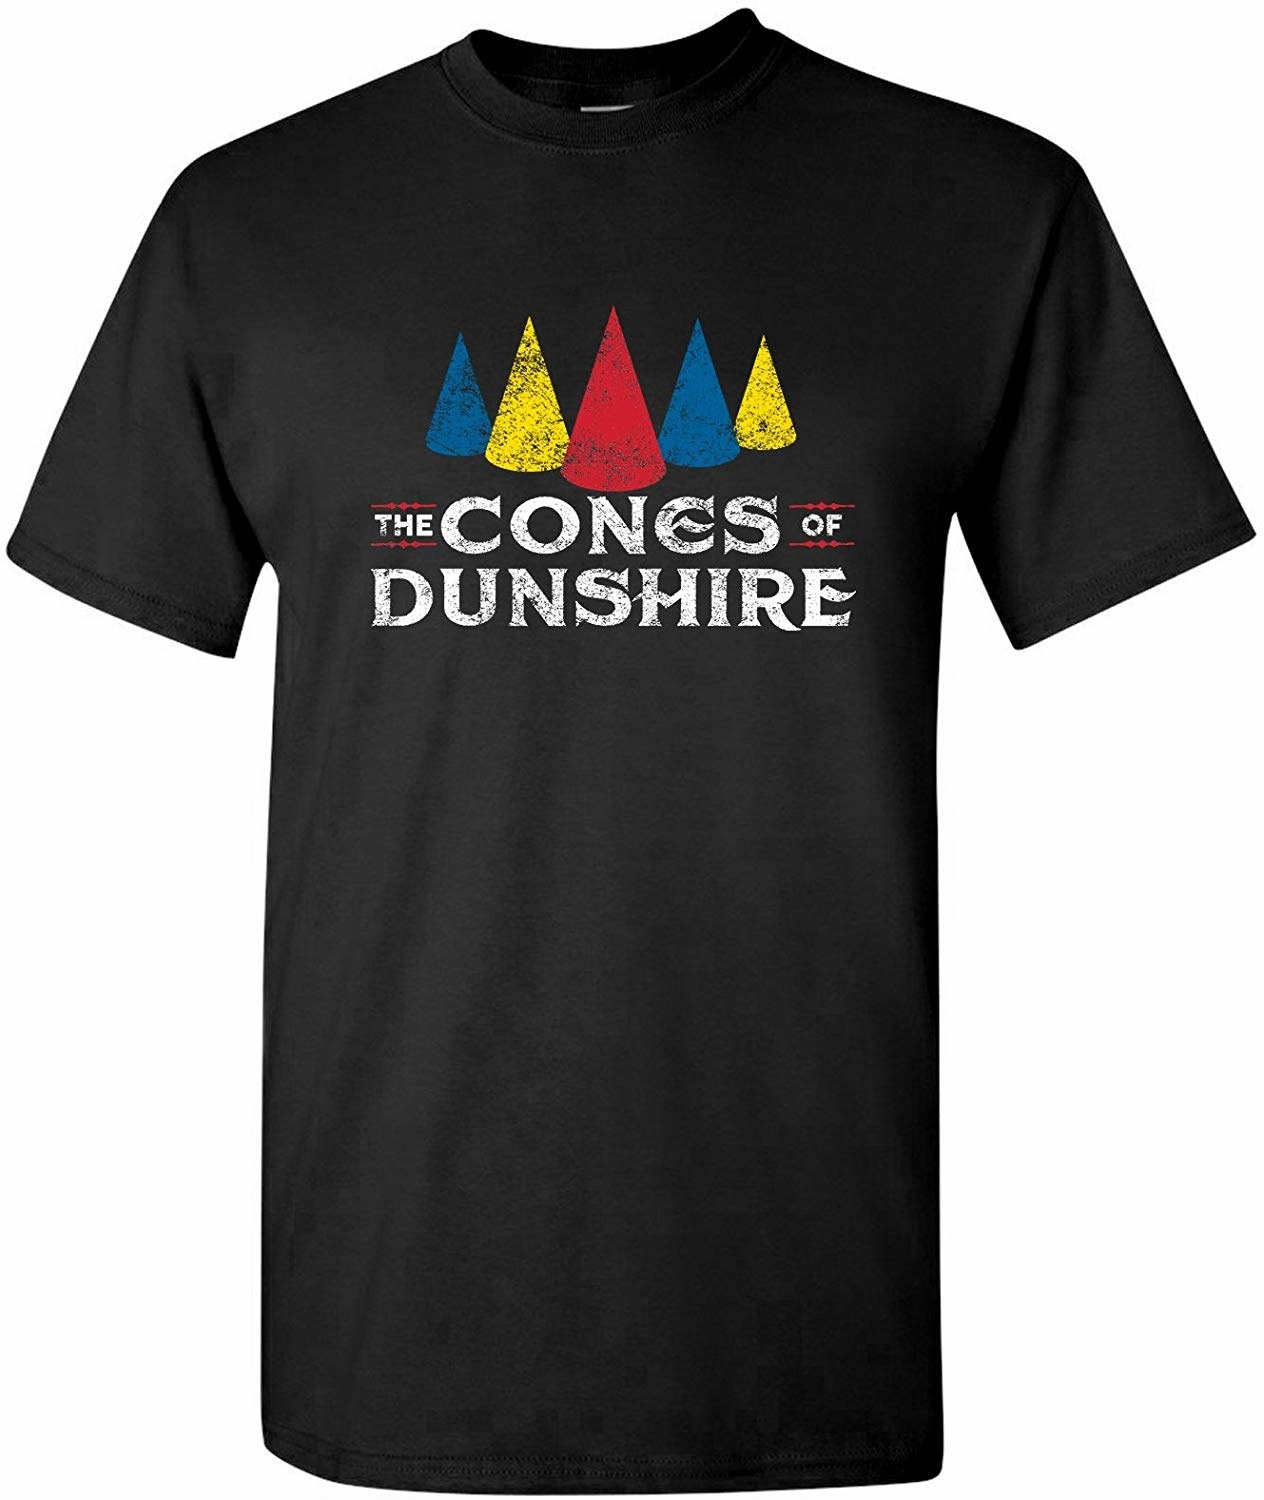 "The crew neck T-shirt that reads, ""The Cones of Dunshire."""